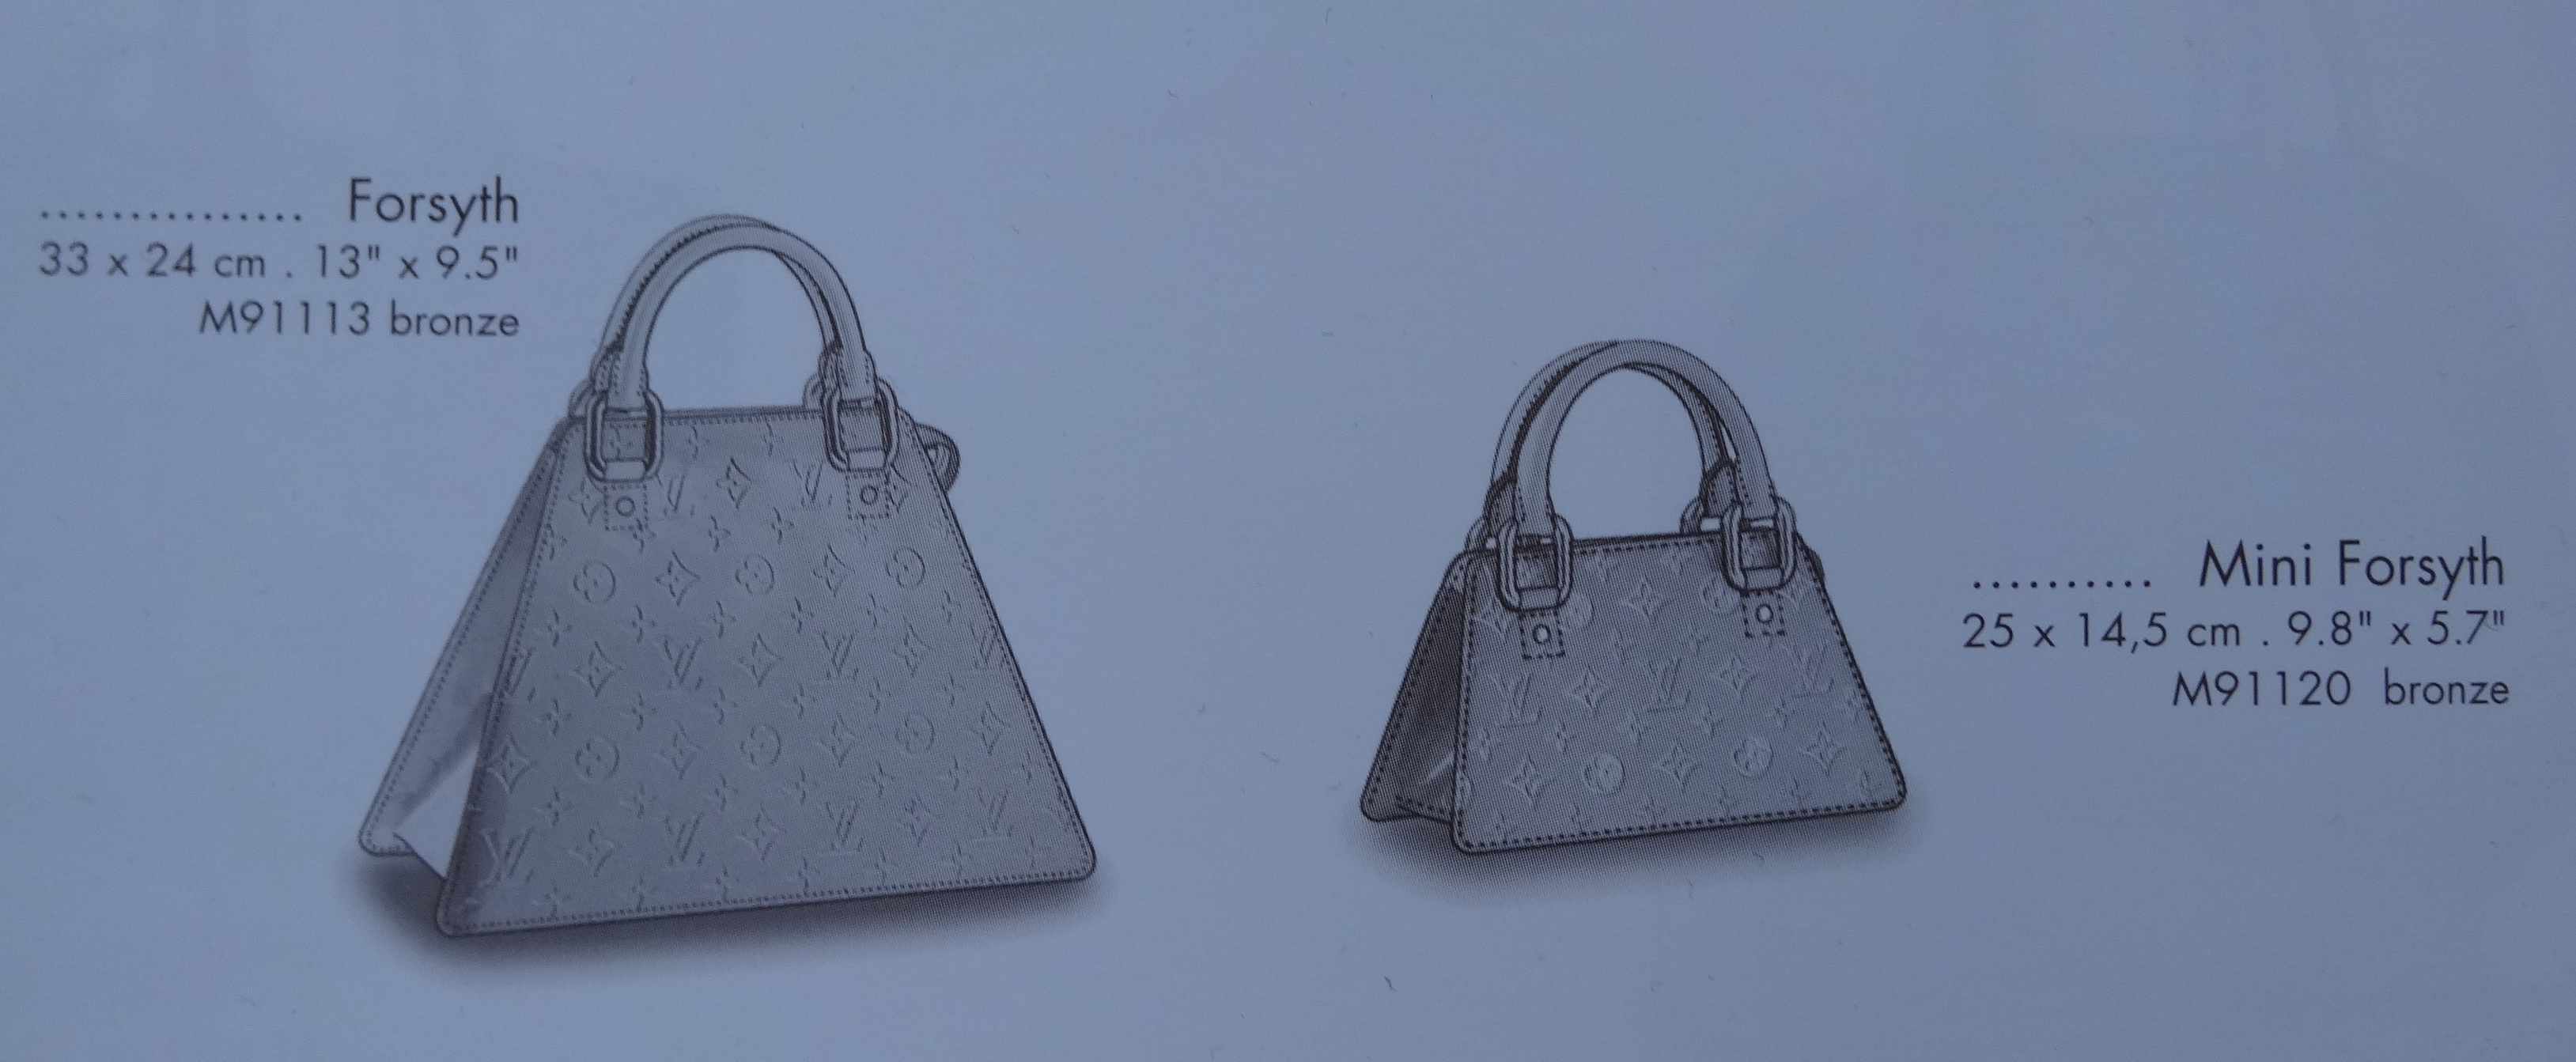 Forsyth and Mini Forsyth, (c) Louis Vuitton Le Catalogue 2001